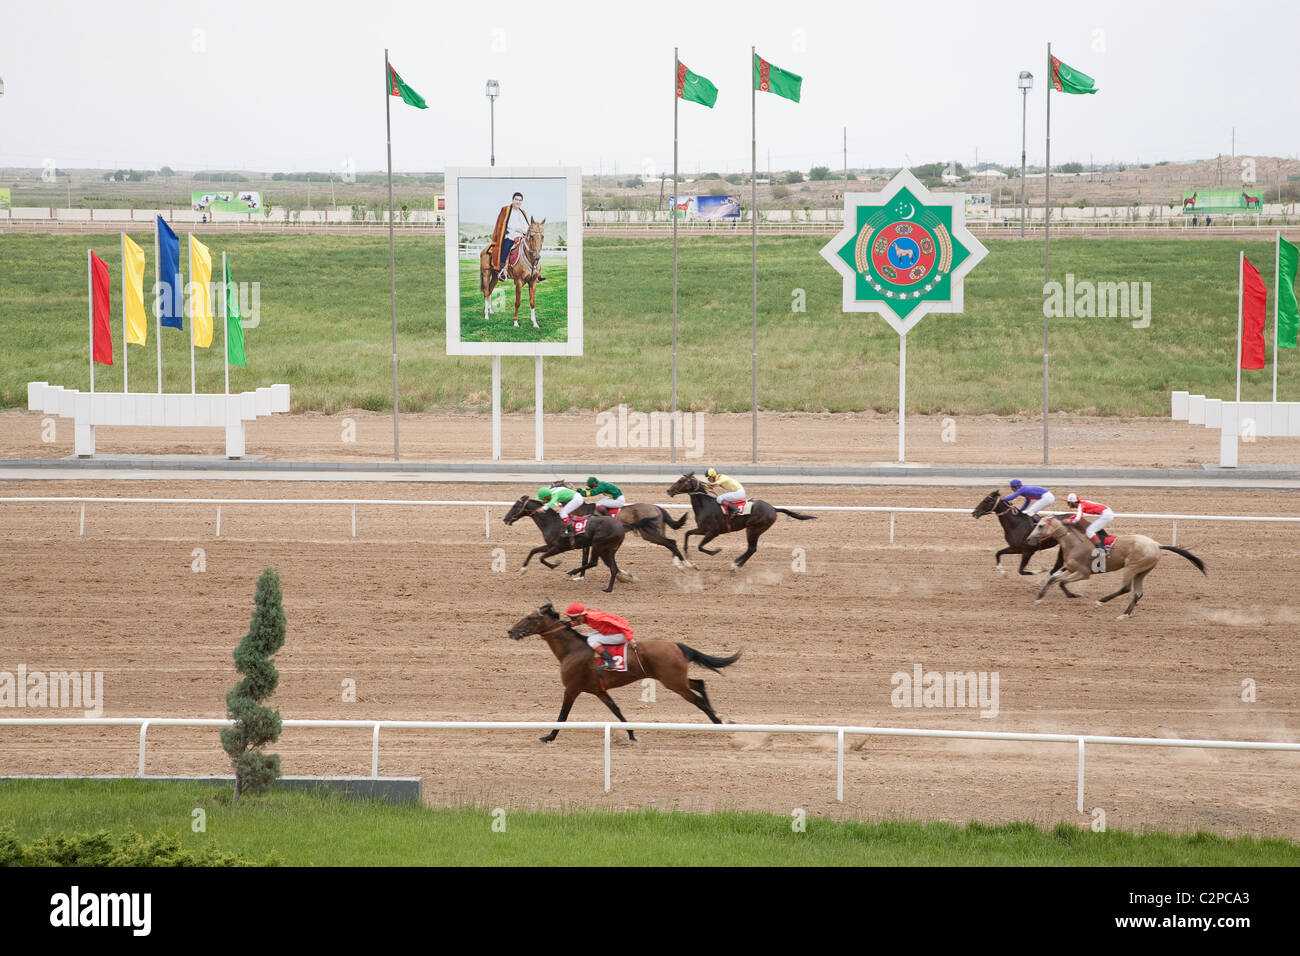 horse-racing-at-the-city-hippodrome-in-a